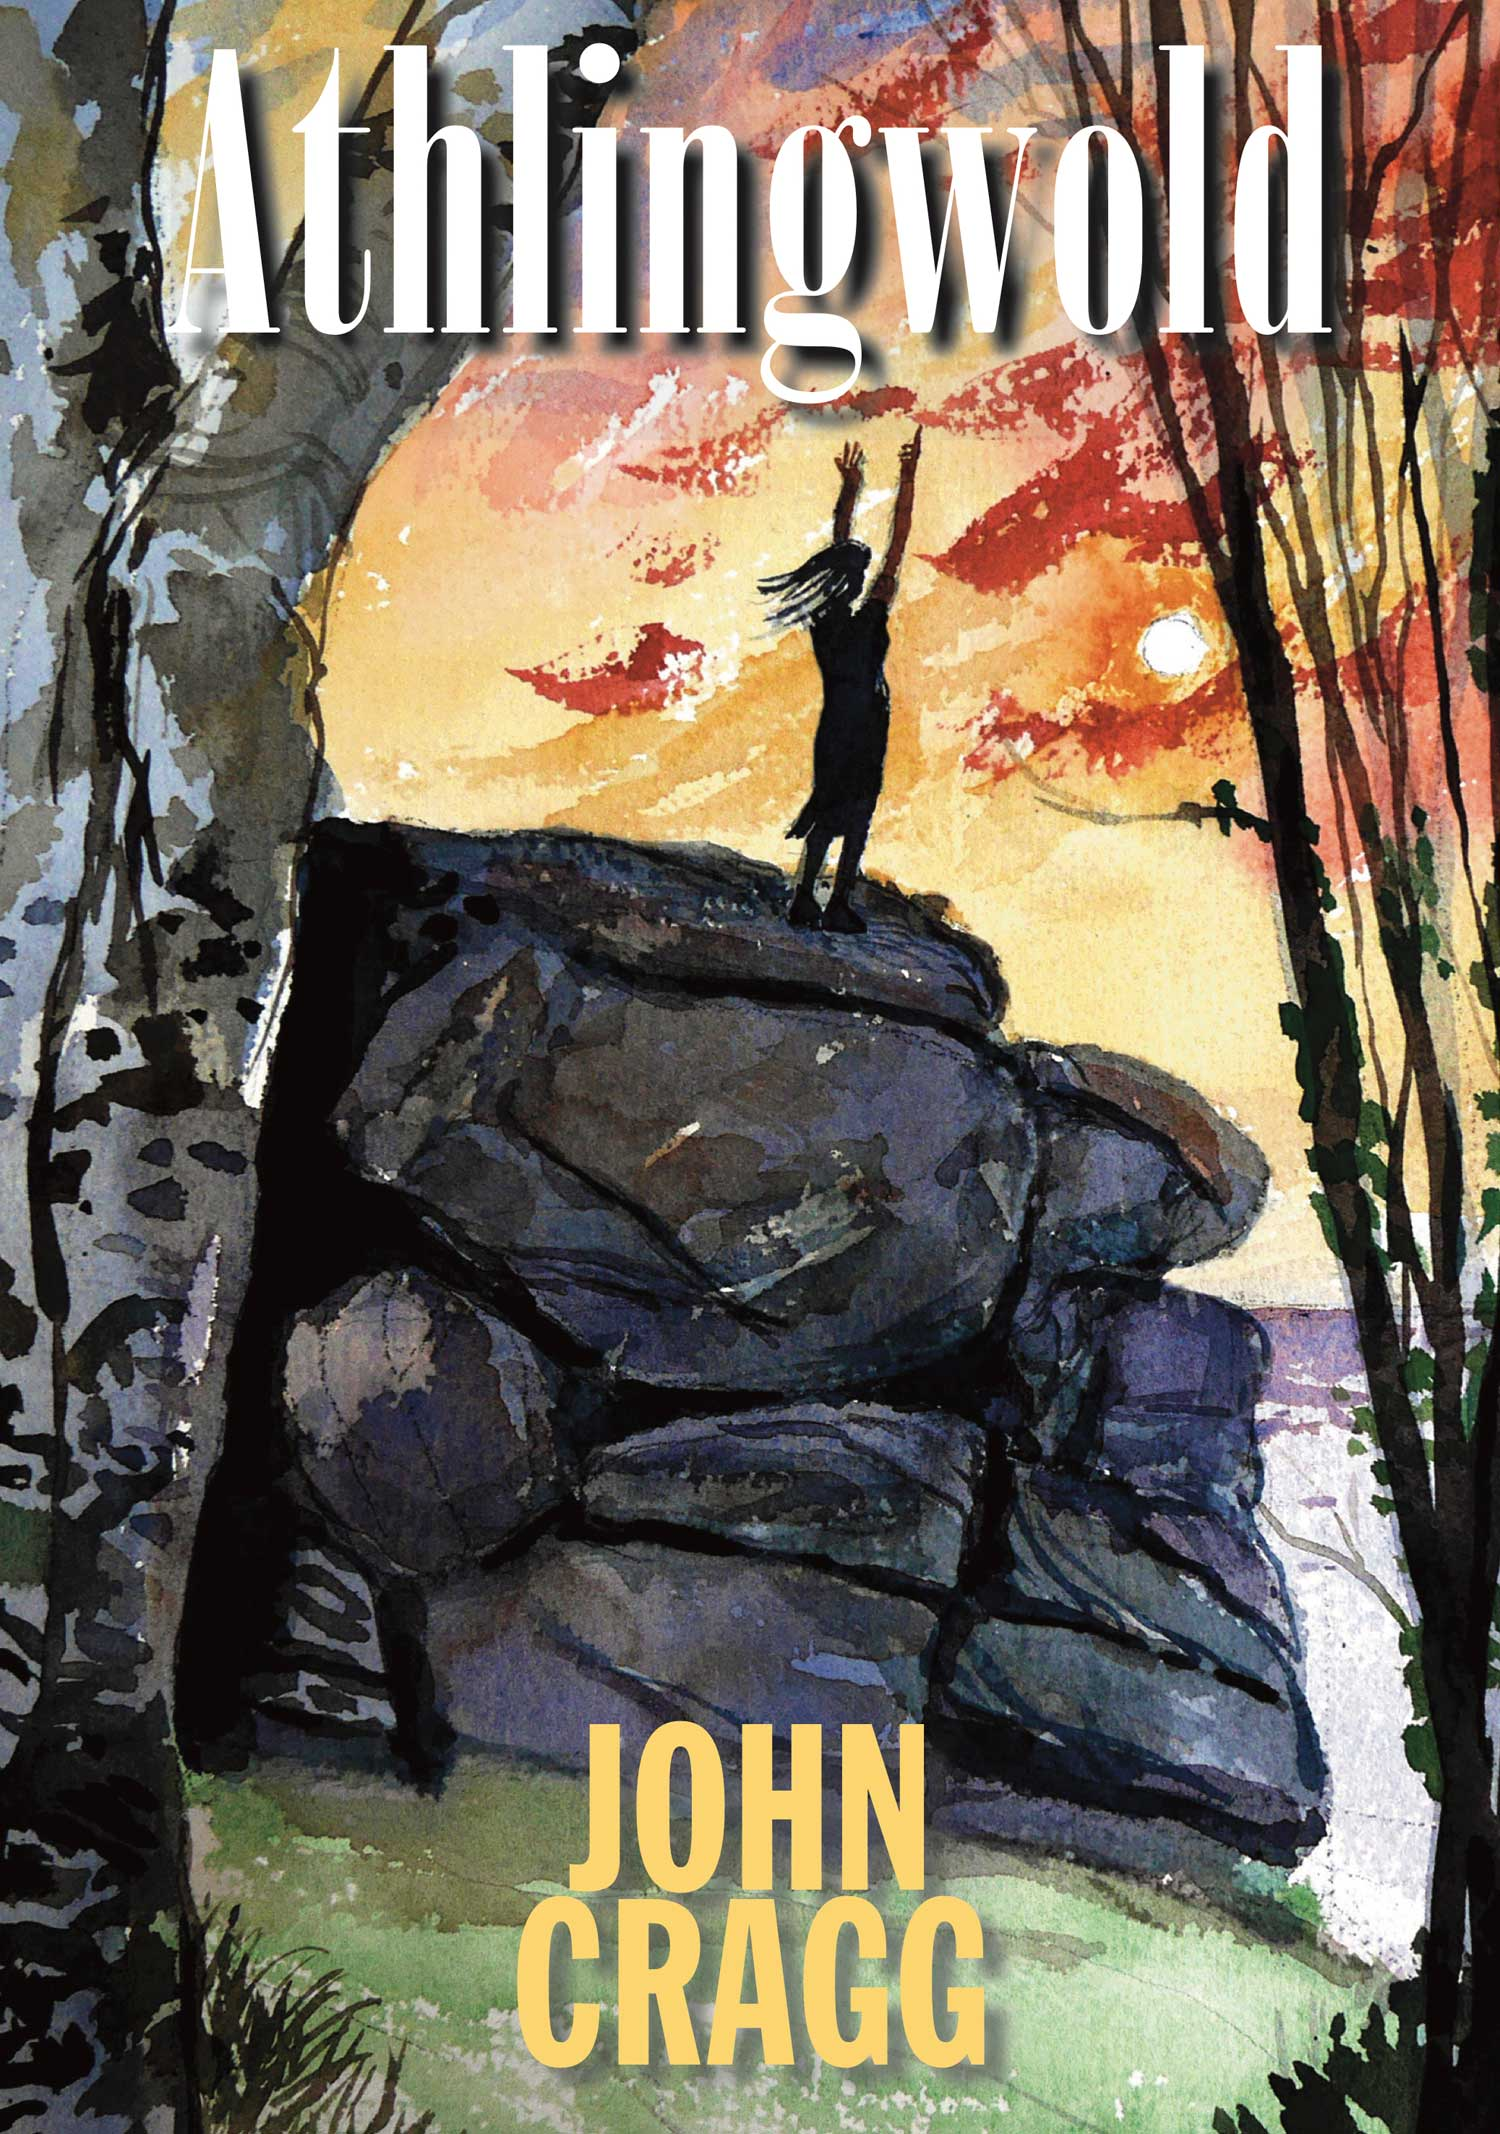 Athlingwold author John Cragg writes on how to develop your writing